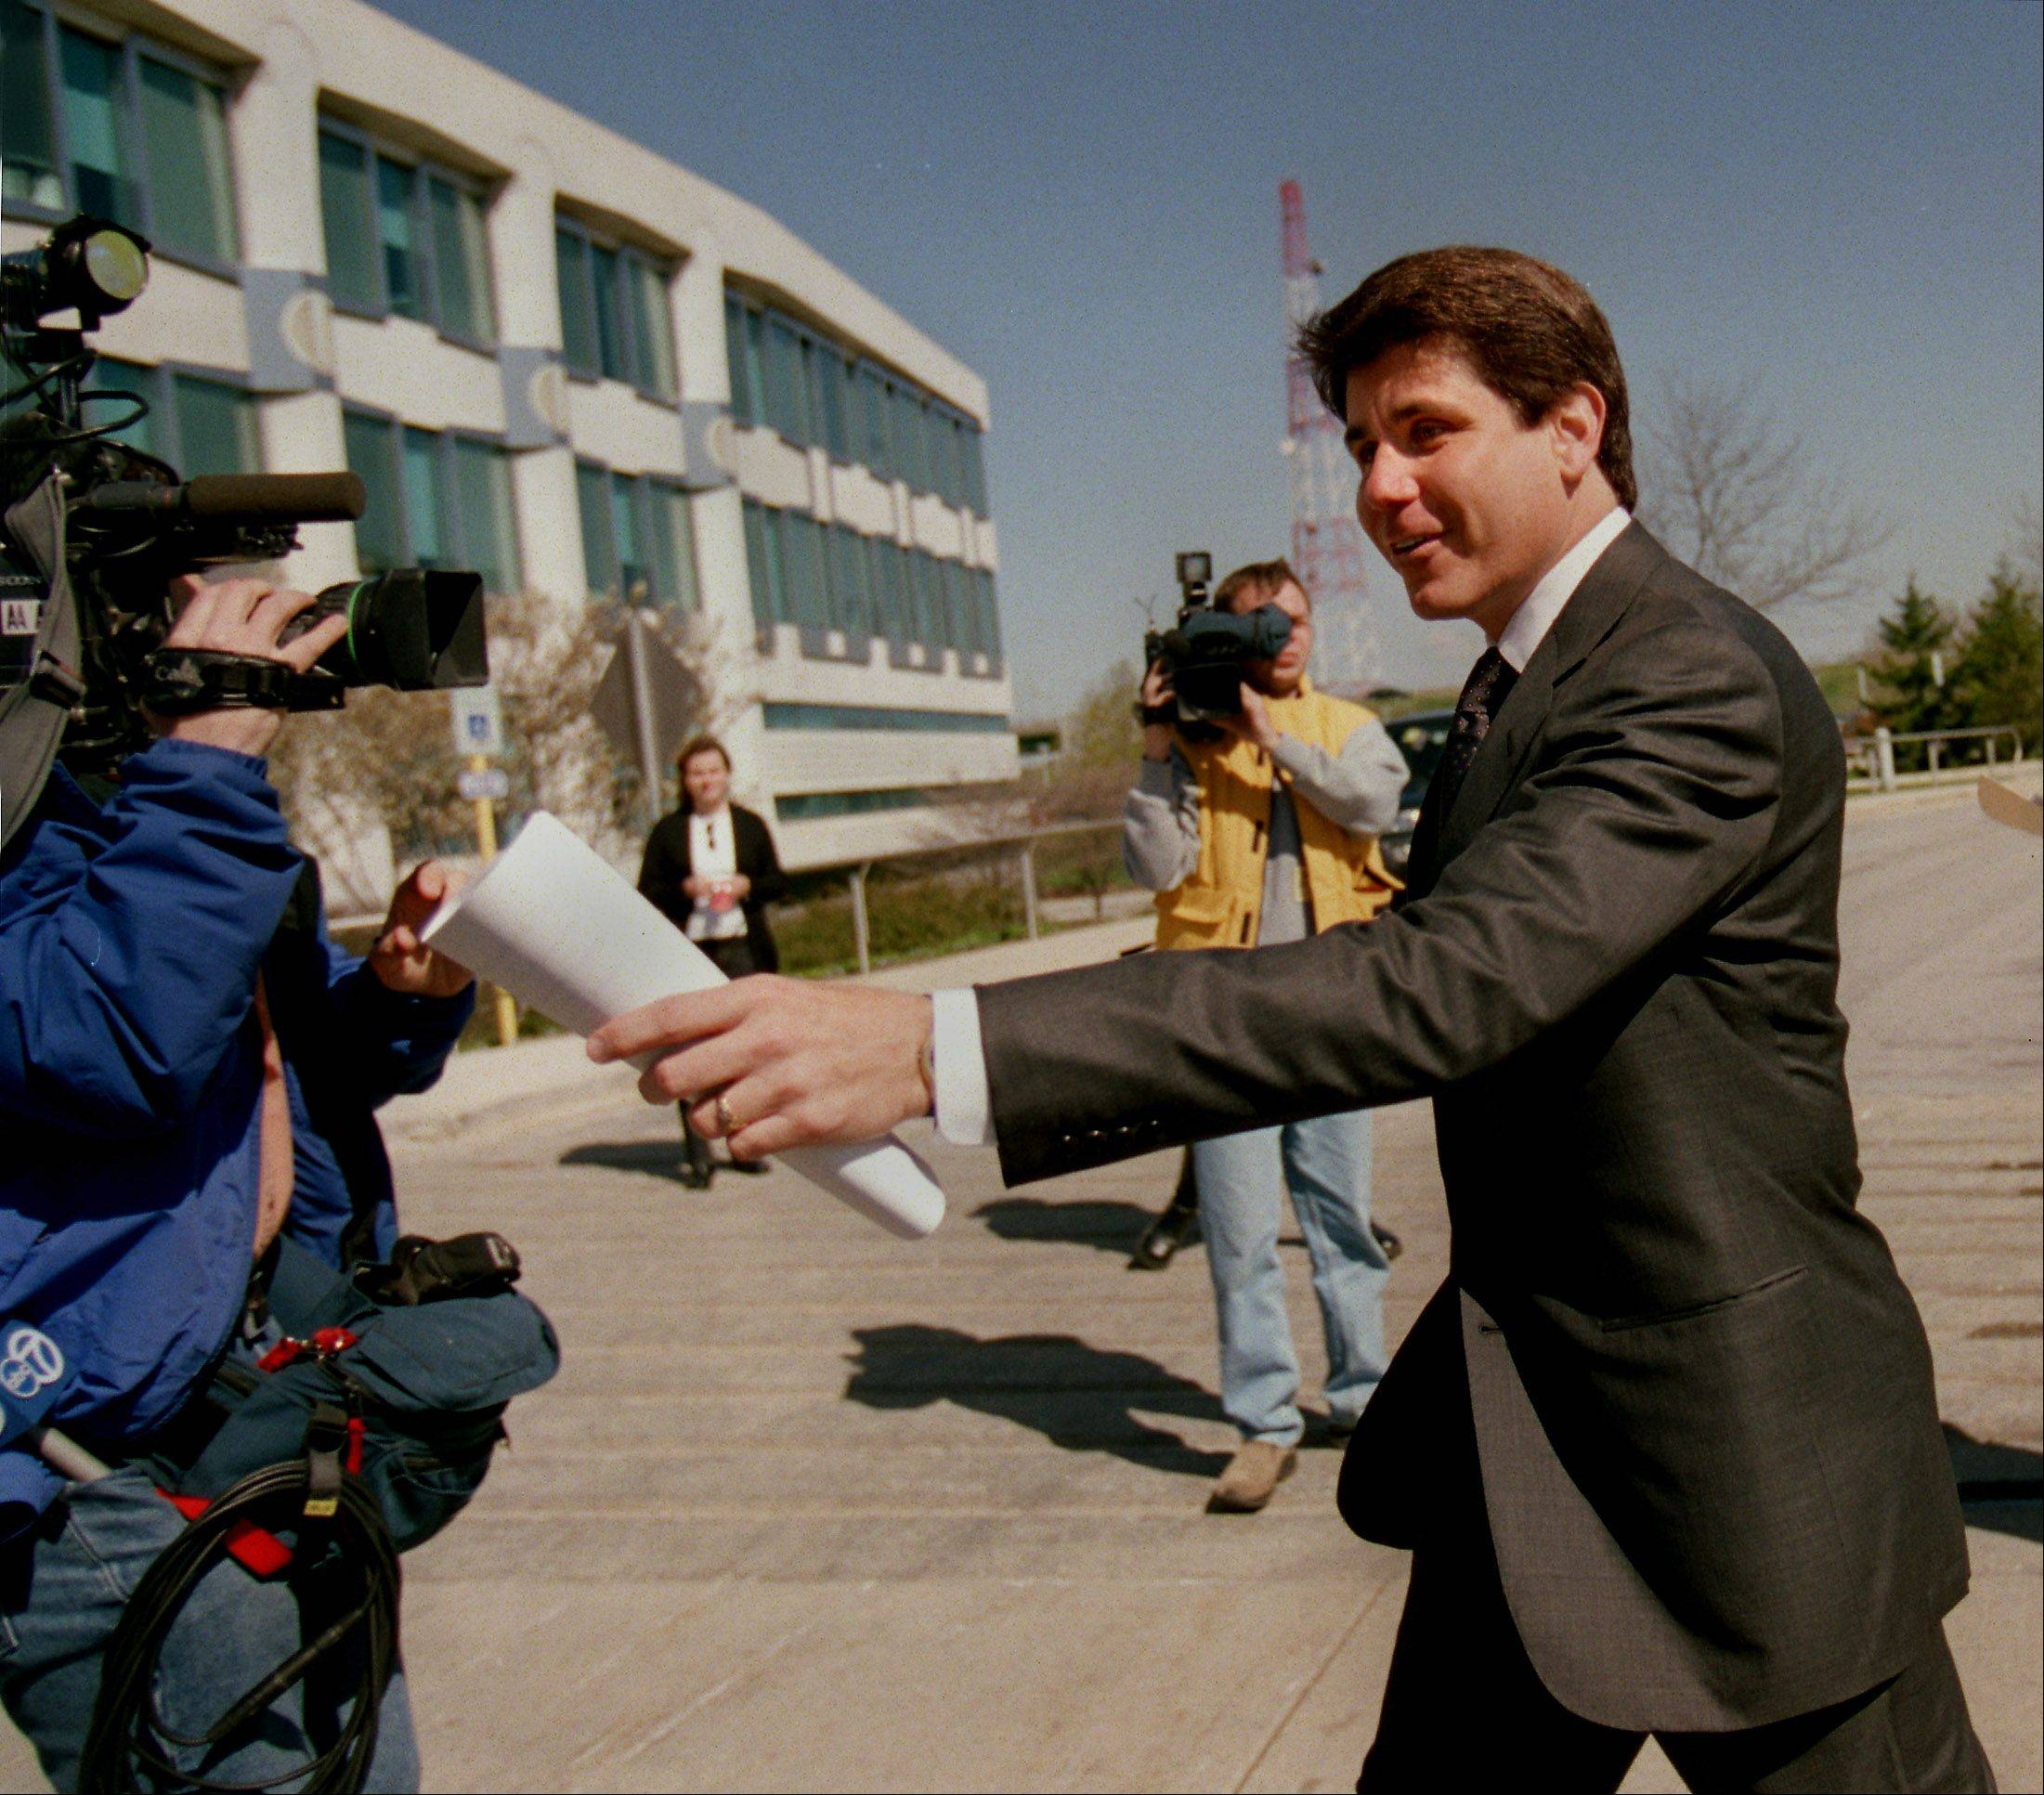 Ex-Gov. Rod Blagojevich, shown outside the Illinois Tollway Authority headquarters in Downers Grove, initiated fund transfers from the toll authority to the state's general fund, an inspector general's report says.